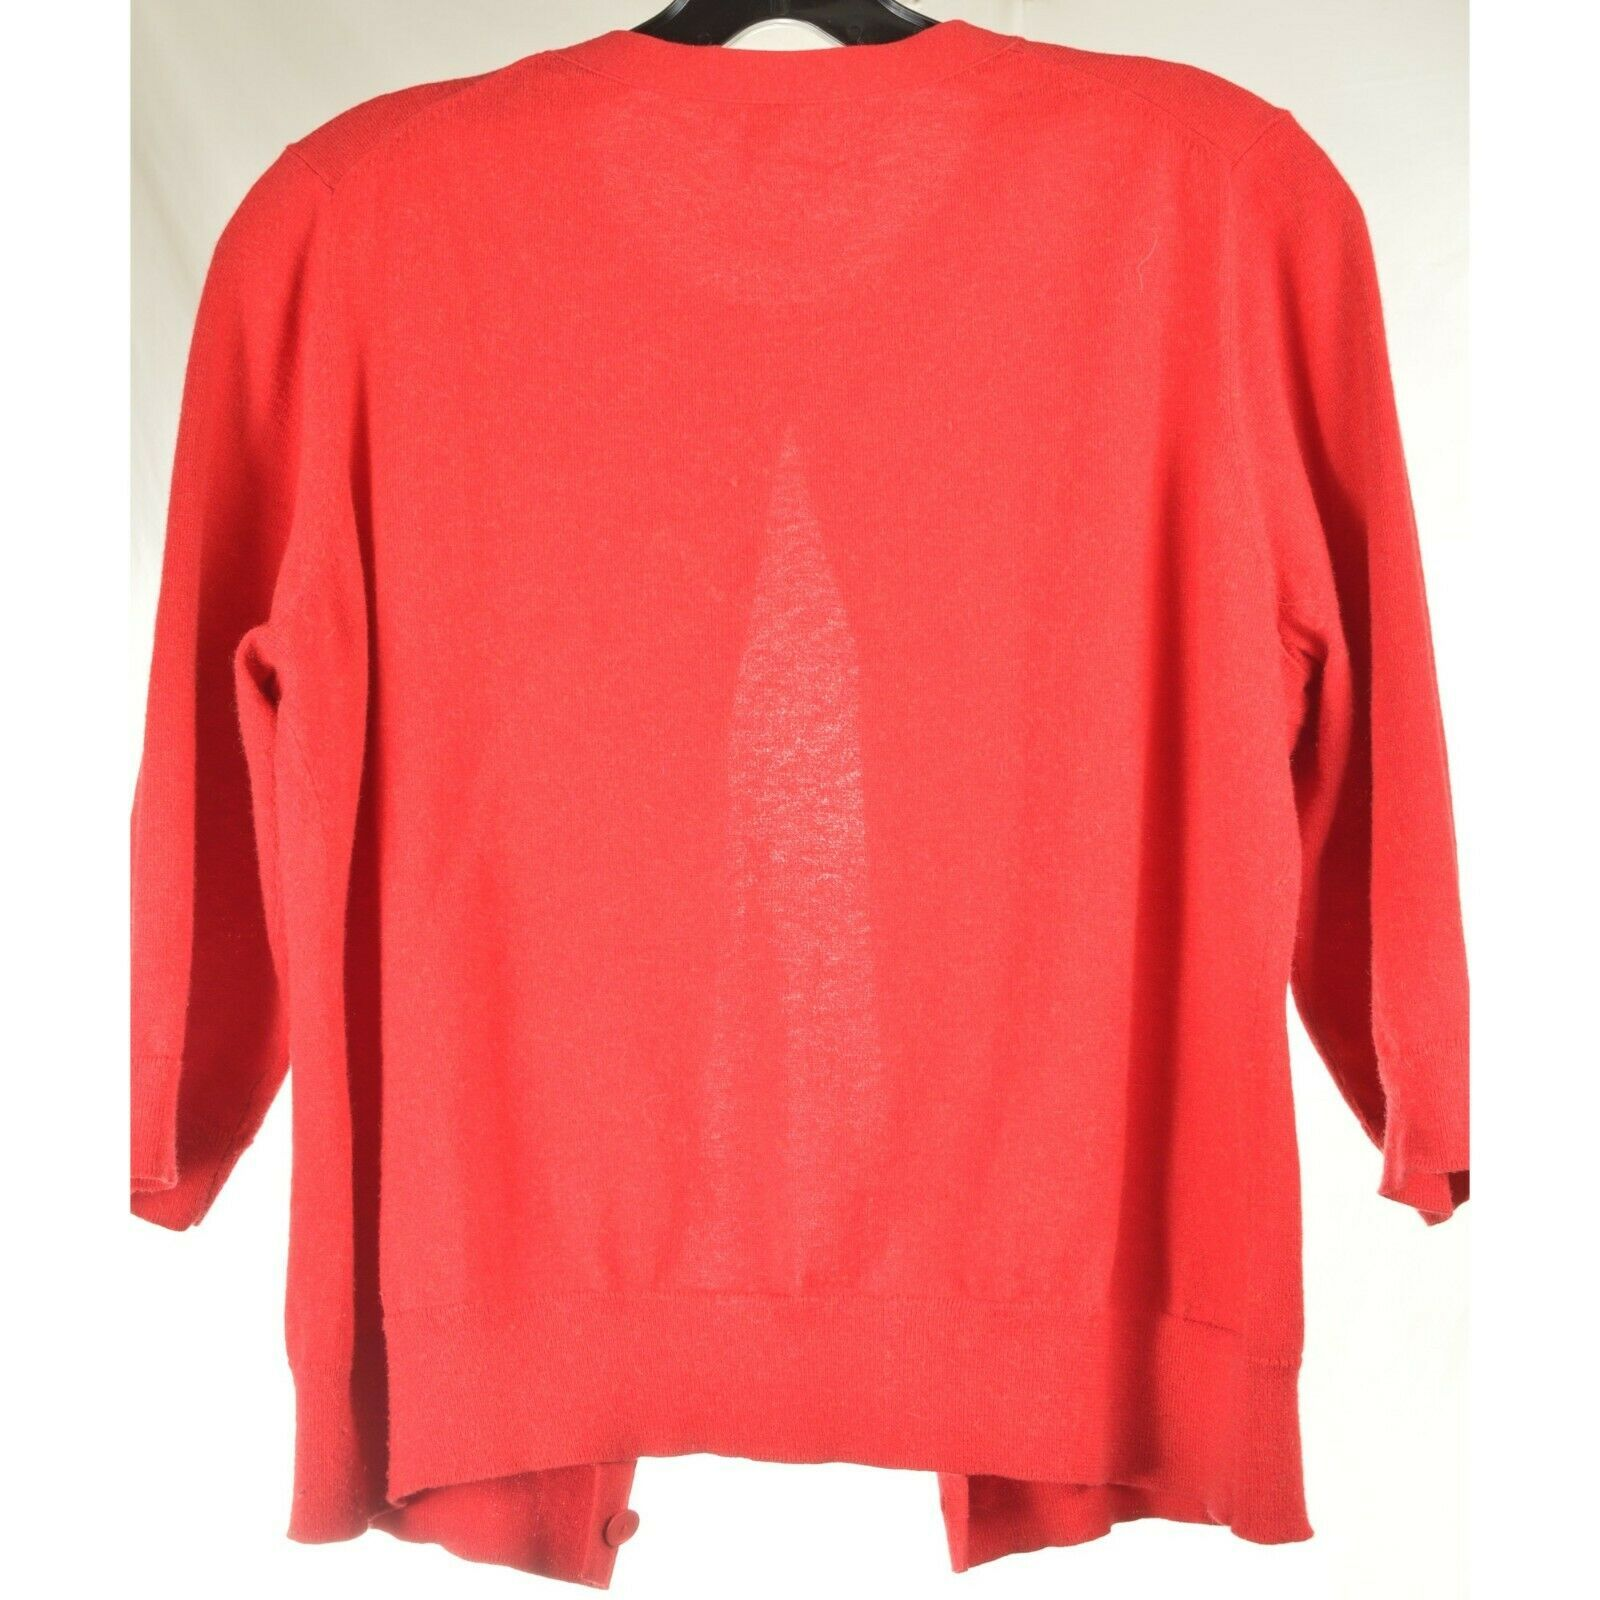 Eileen Fisher sweater M red cardigan 3/4 sleeves organic cotton cashmere blend image 9